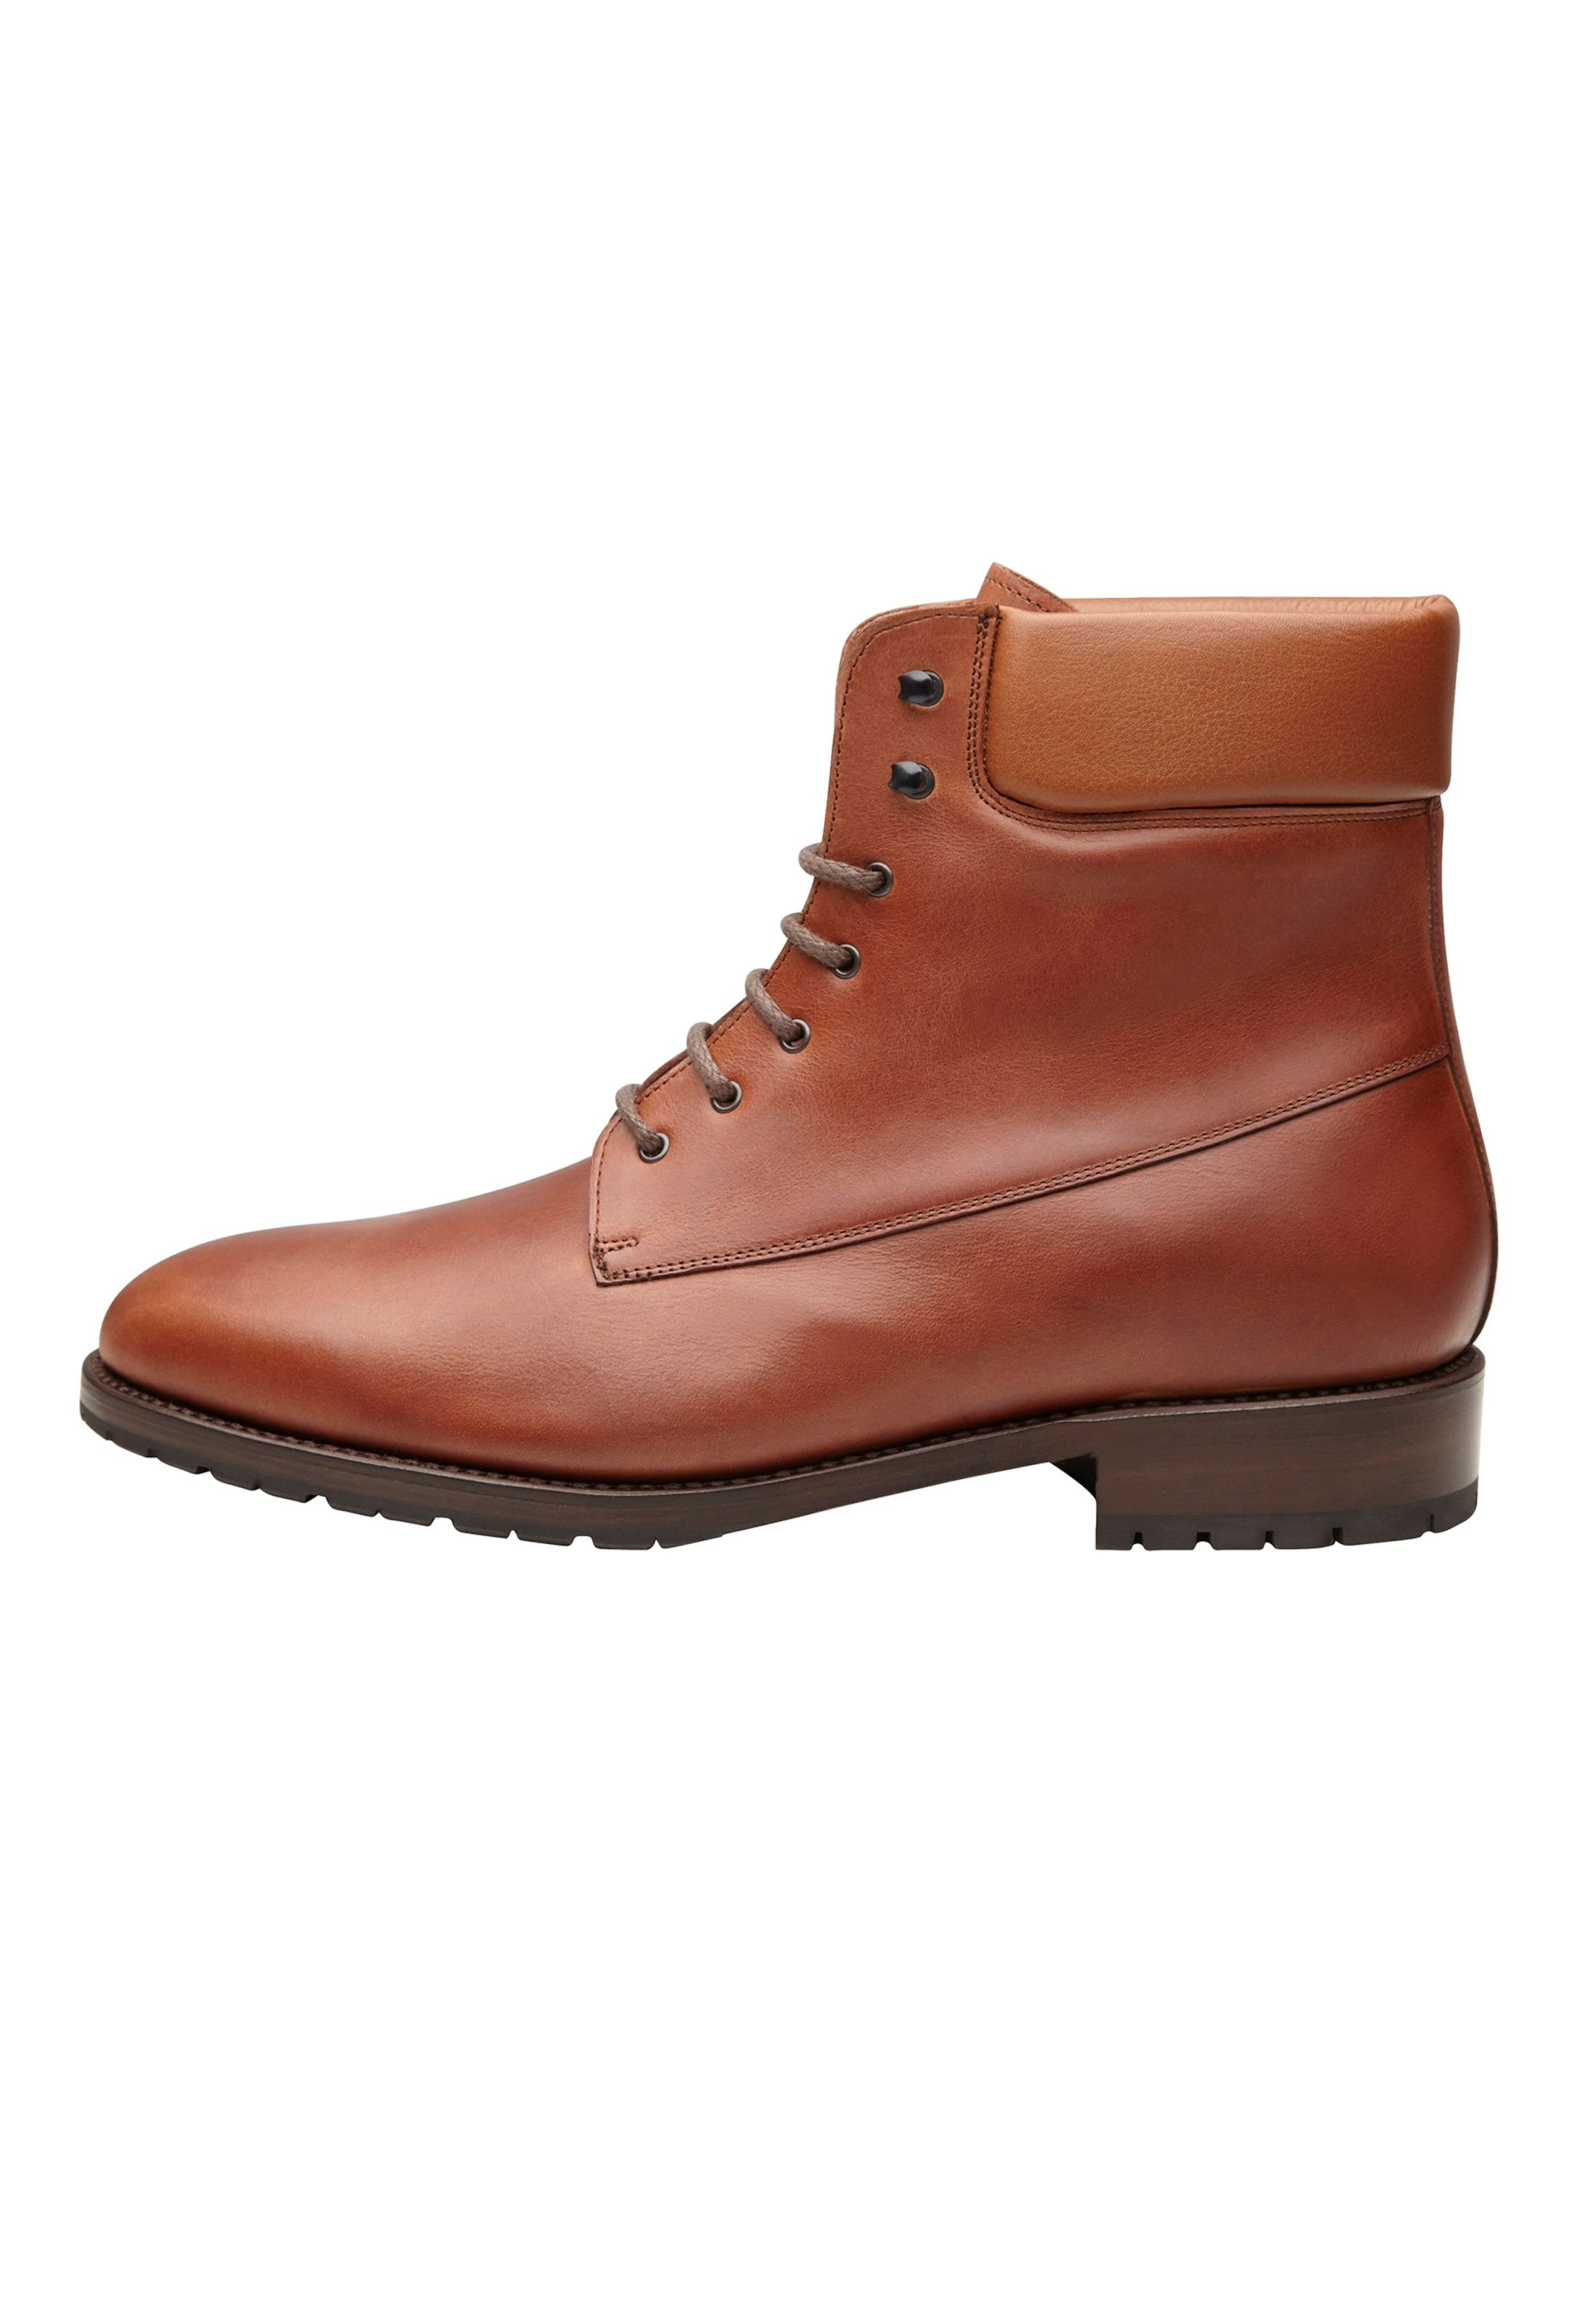 In Shoepassion Shoepassion 'no6711' Boots Rostbraun Boots 5lF1K3TJcu